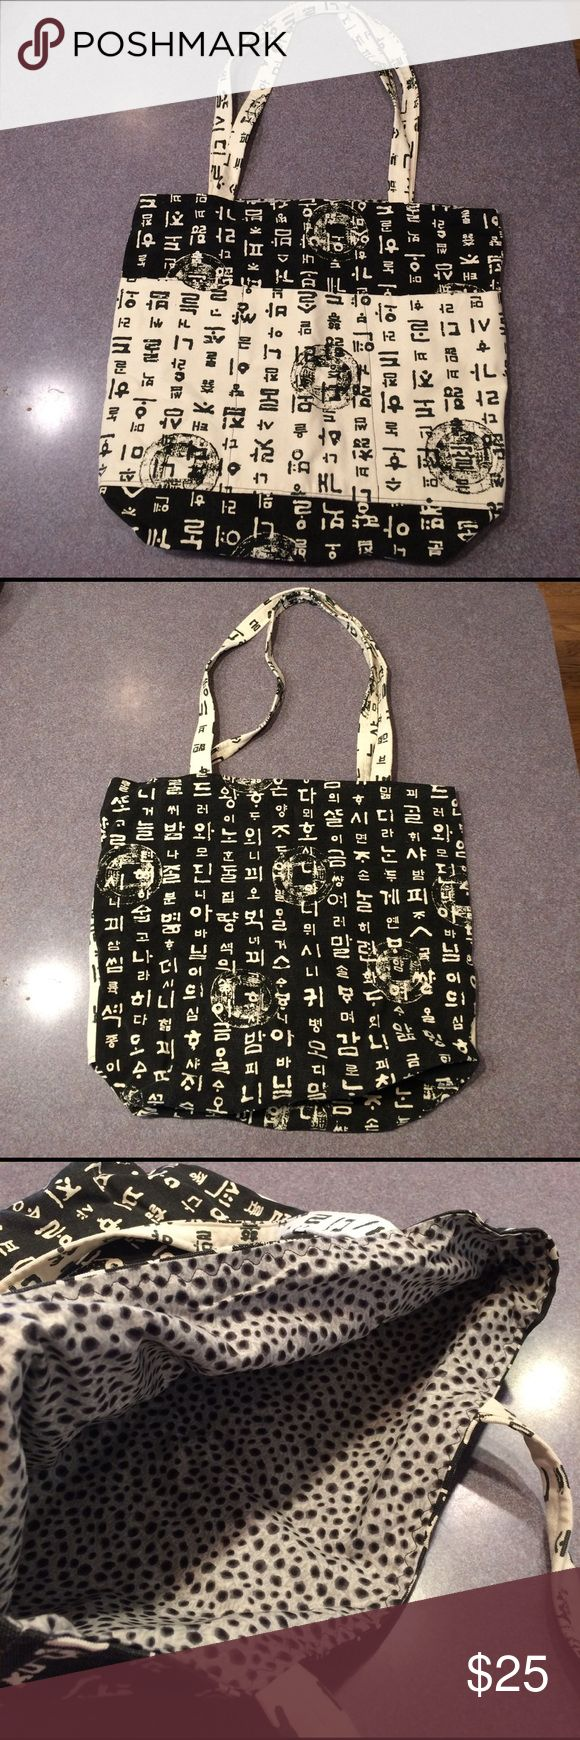 Black and White Asian Print Tote NWOT Handmade black and white Asian print tote. Large open inner compartment. Pockets on outside. Large capacity. Perfect for beach, books, or stashing an extra jacket. Cotton. Never used. Bags Totes